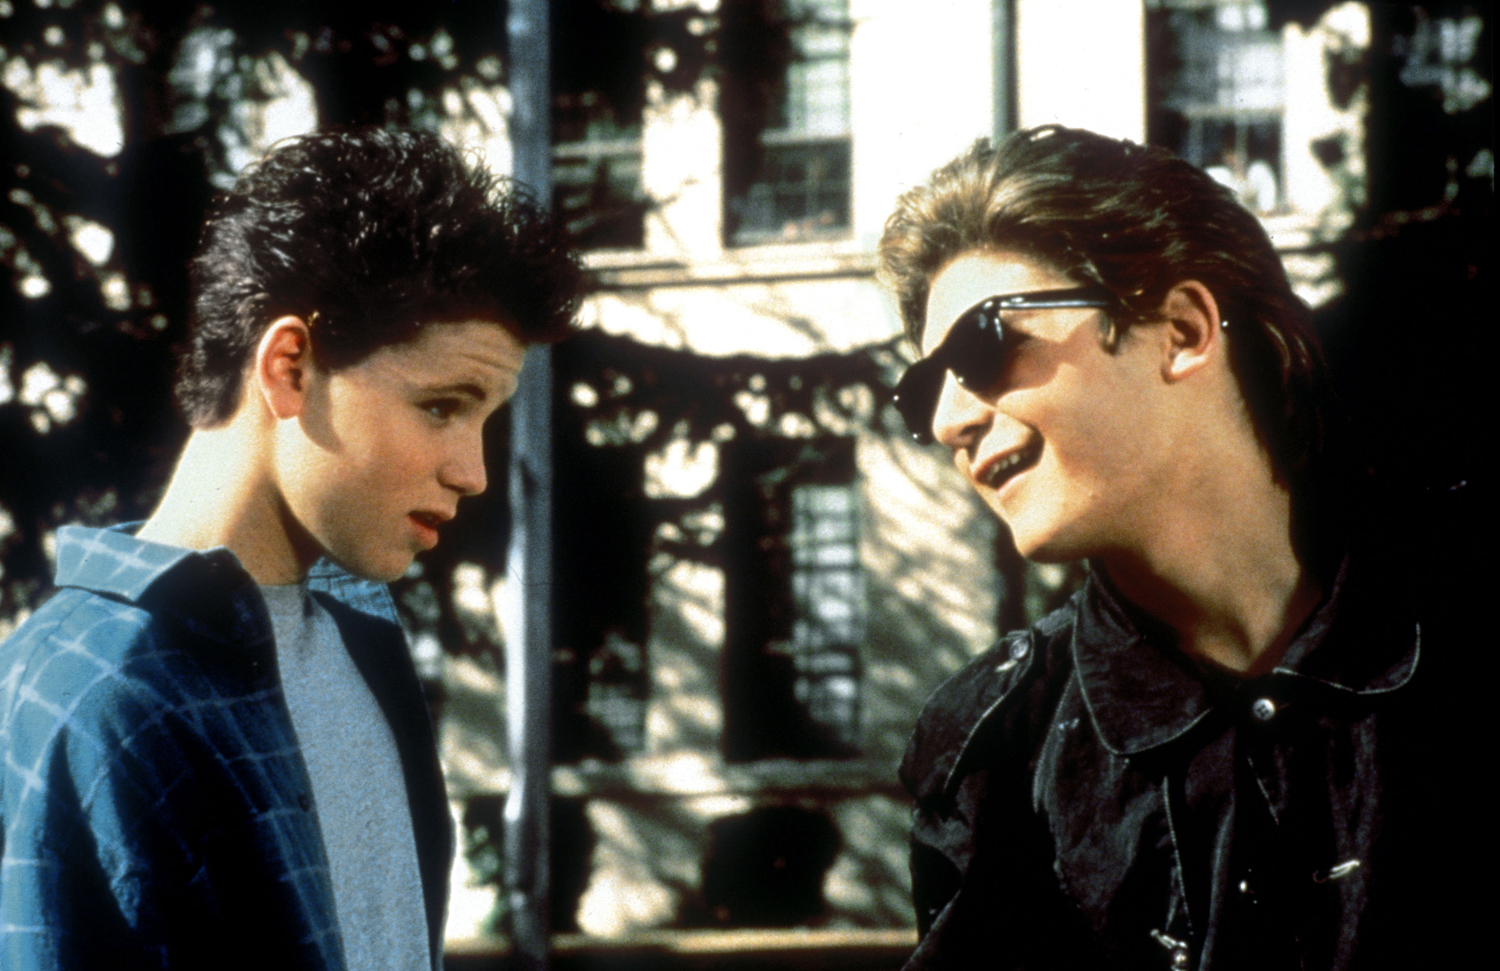 Corey Haim, Corey Feldman in License To Drive (1988)Photo: 20th Century Fox/Kobal/REX/Shutterstock